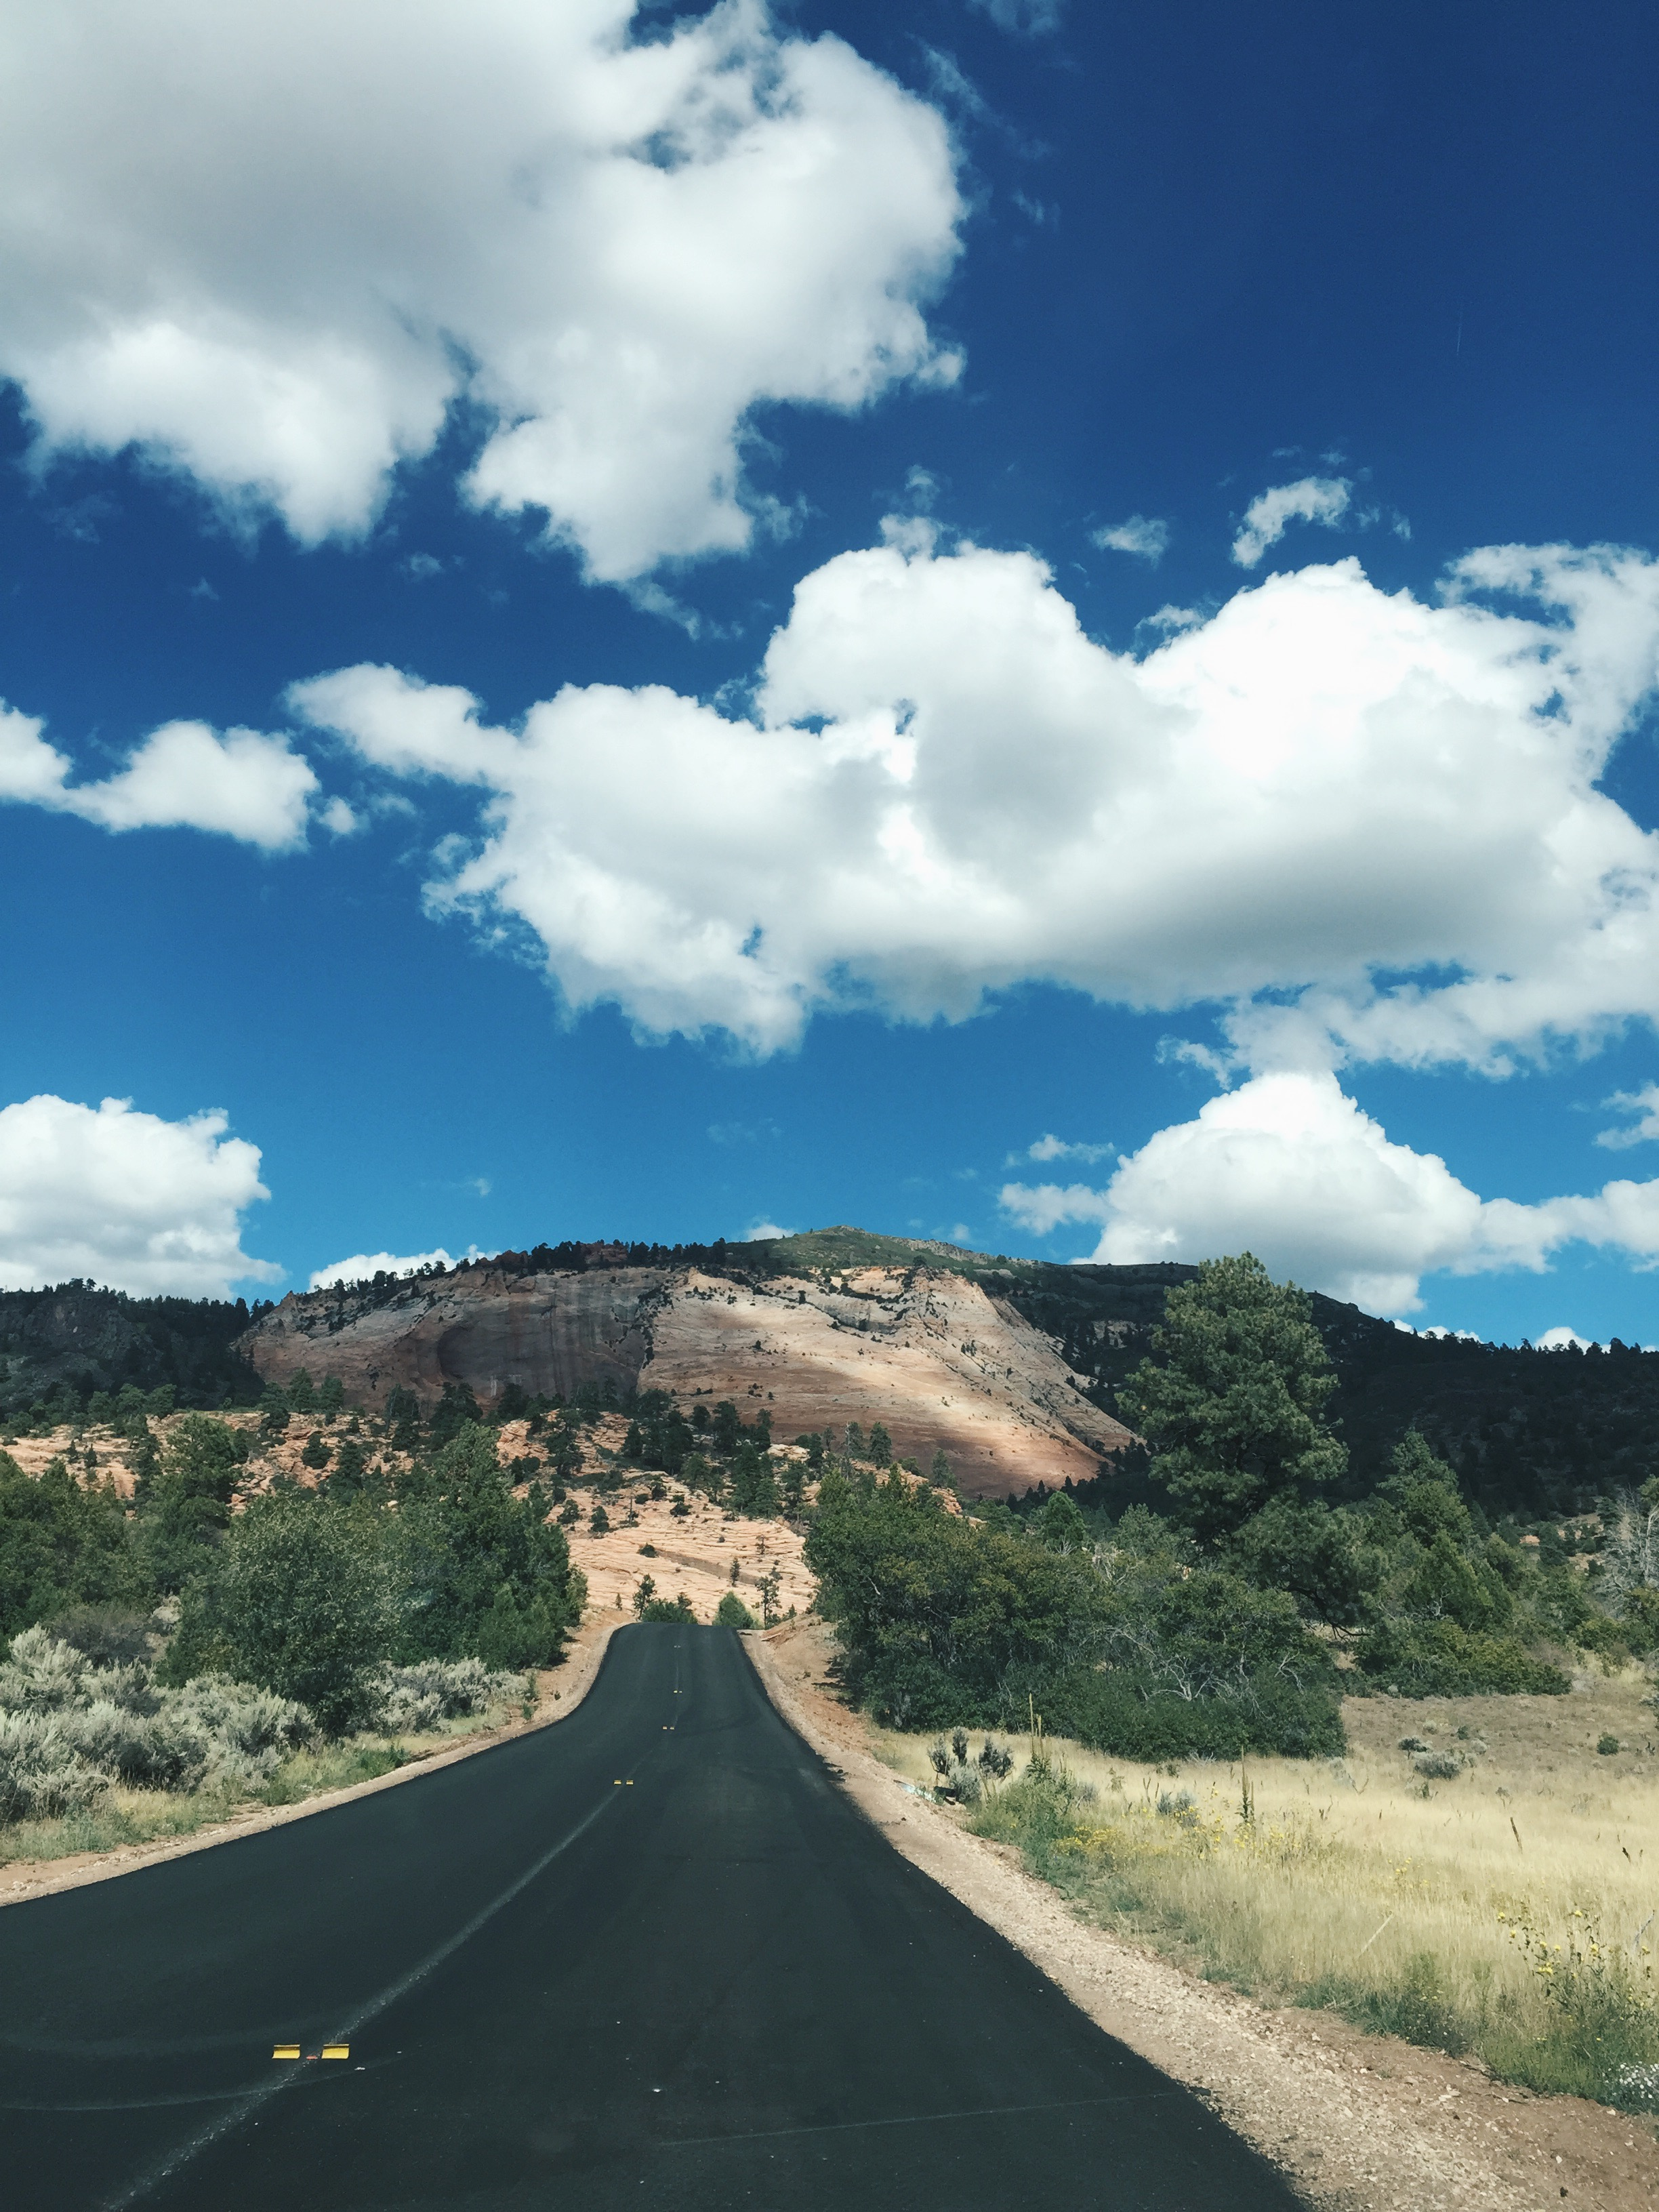 A Solo Trip Across the US | Heather Day